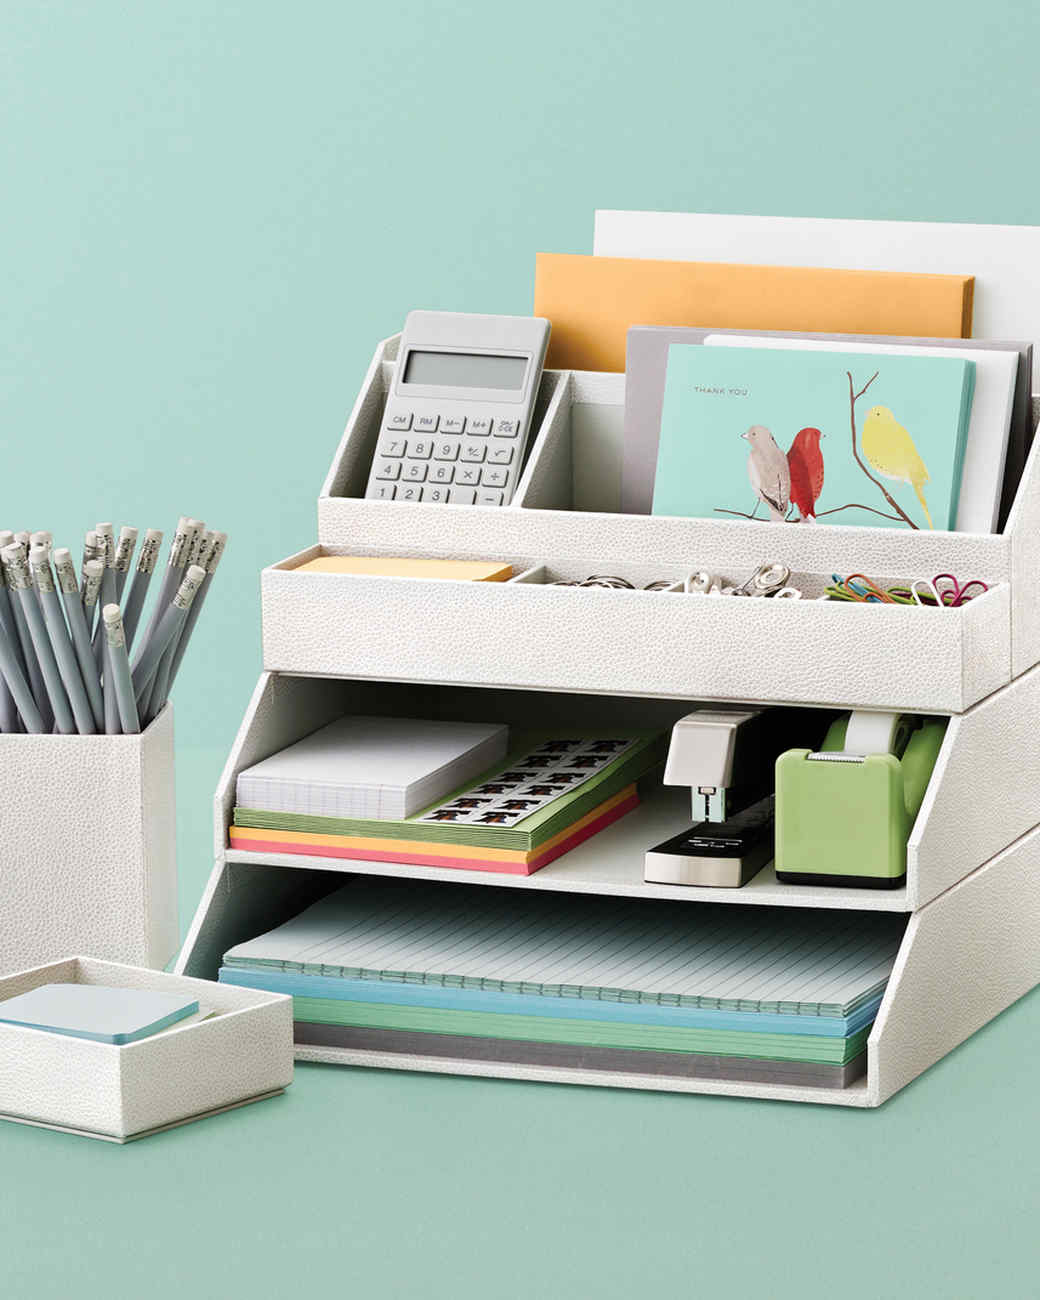 Beau Martha Stewart Home Office With Avery Exclusively At Staples | Martha  Stewart